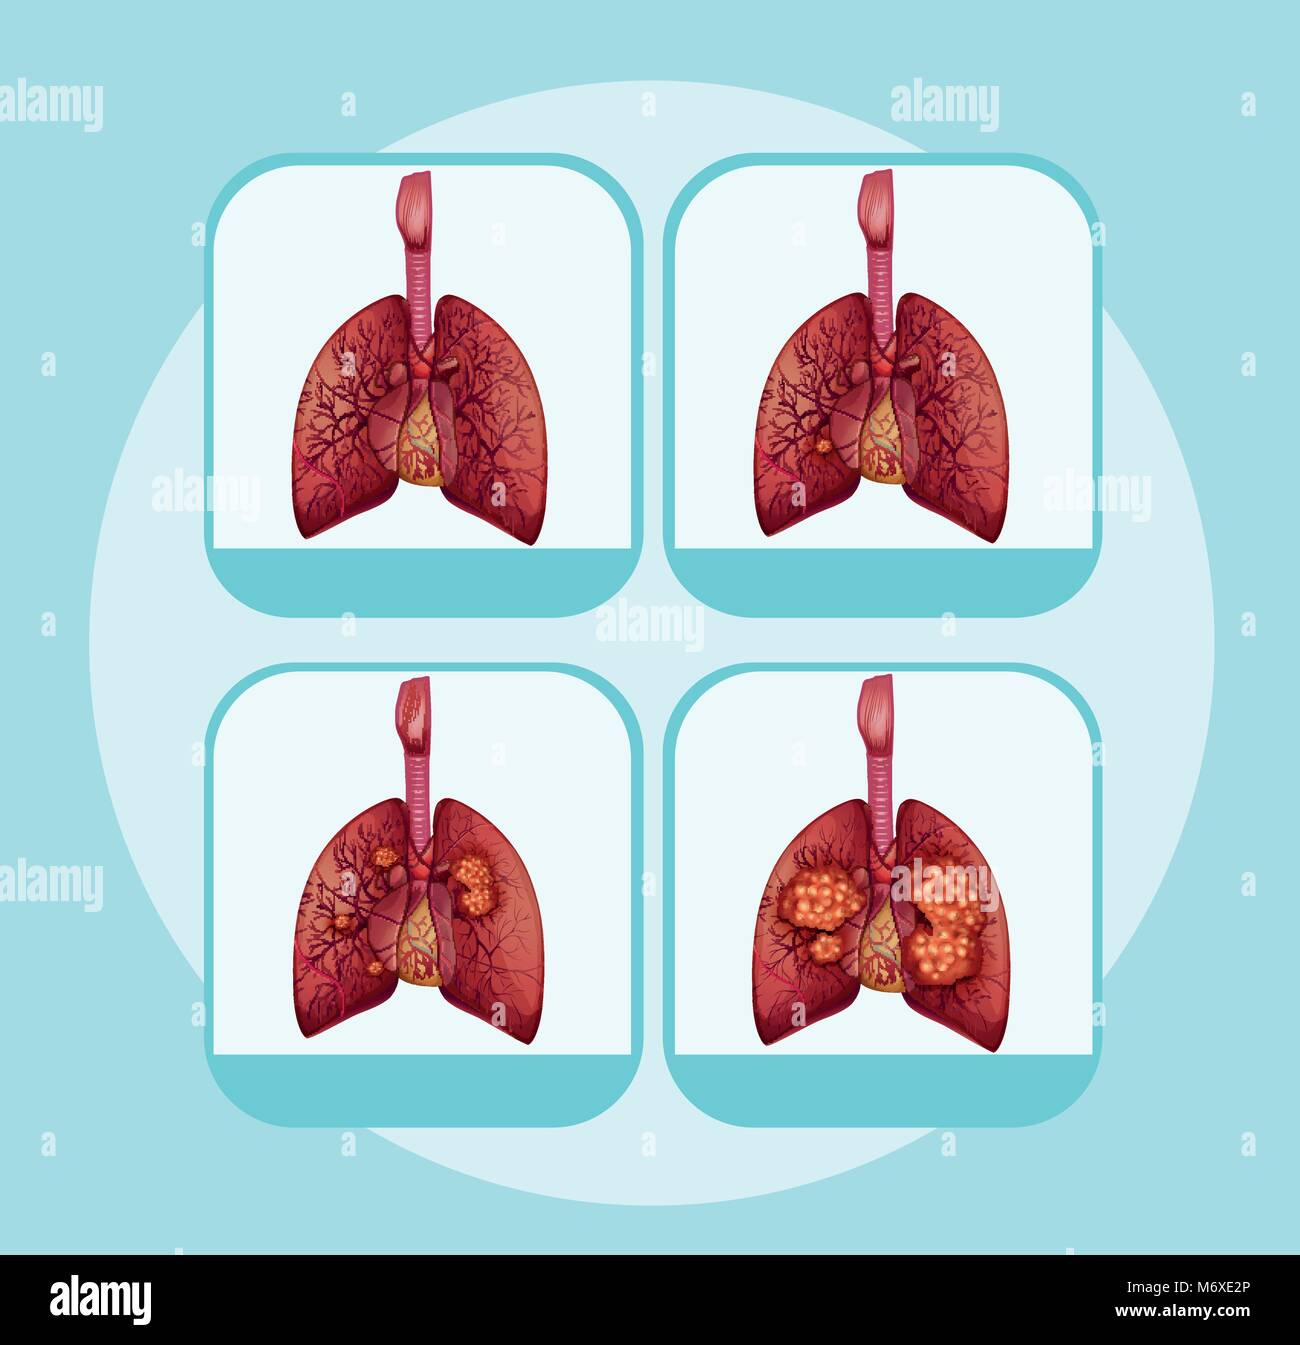 hight resolution of diagram showing different stages of lung cancer illustration